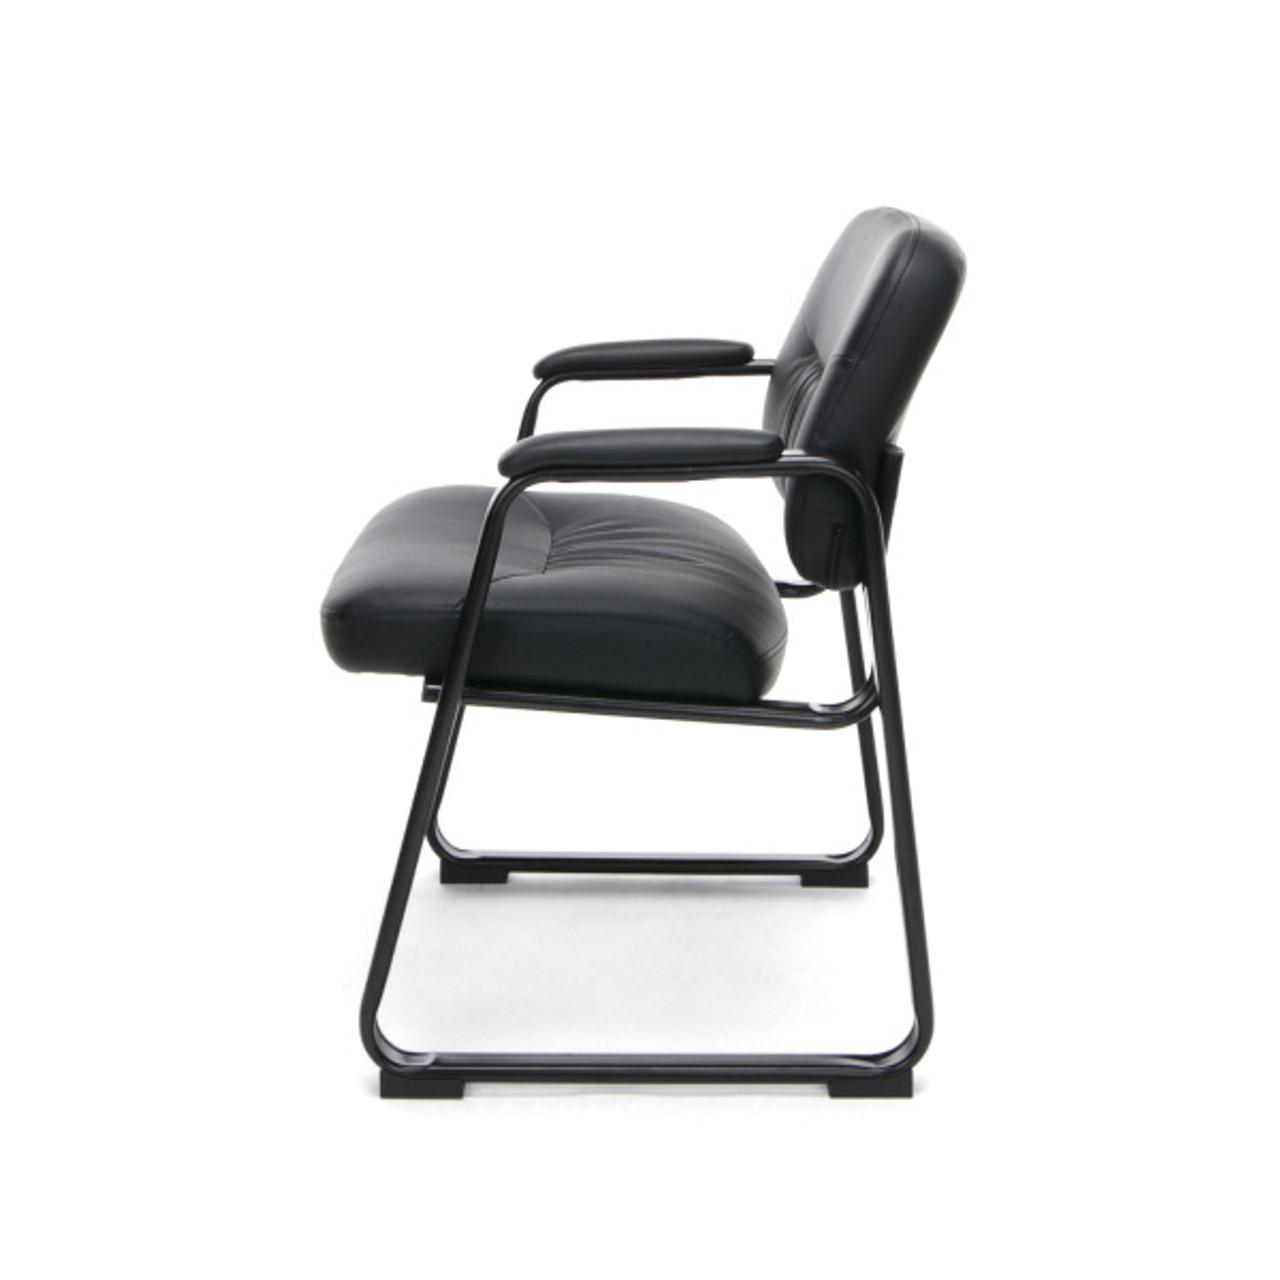 Brilliant Ofm Ess 9015 Essentials Leather Executive Sled Base Side Chair With Padded Arms Pdpeps Interior Chair Design Pdpepsorg